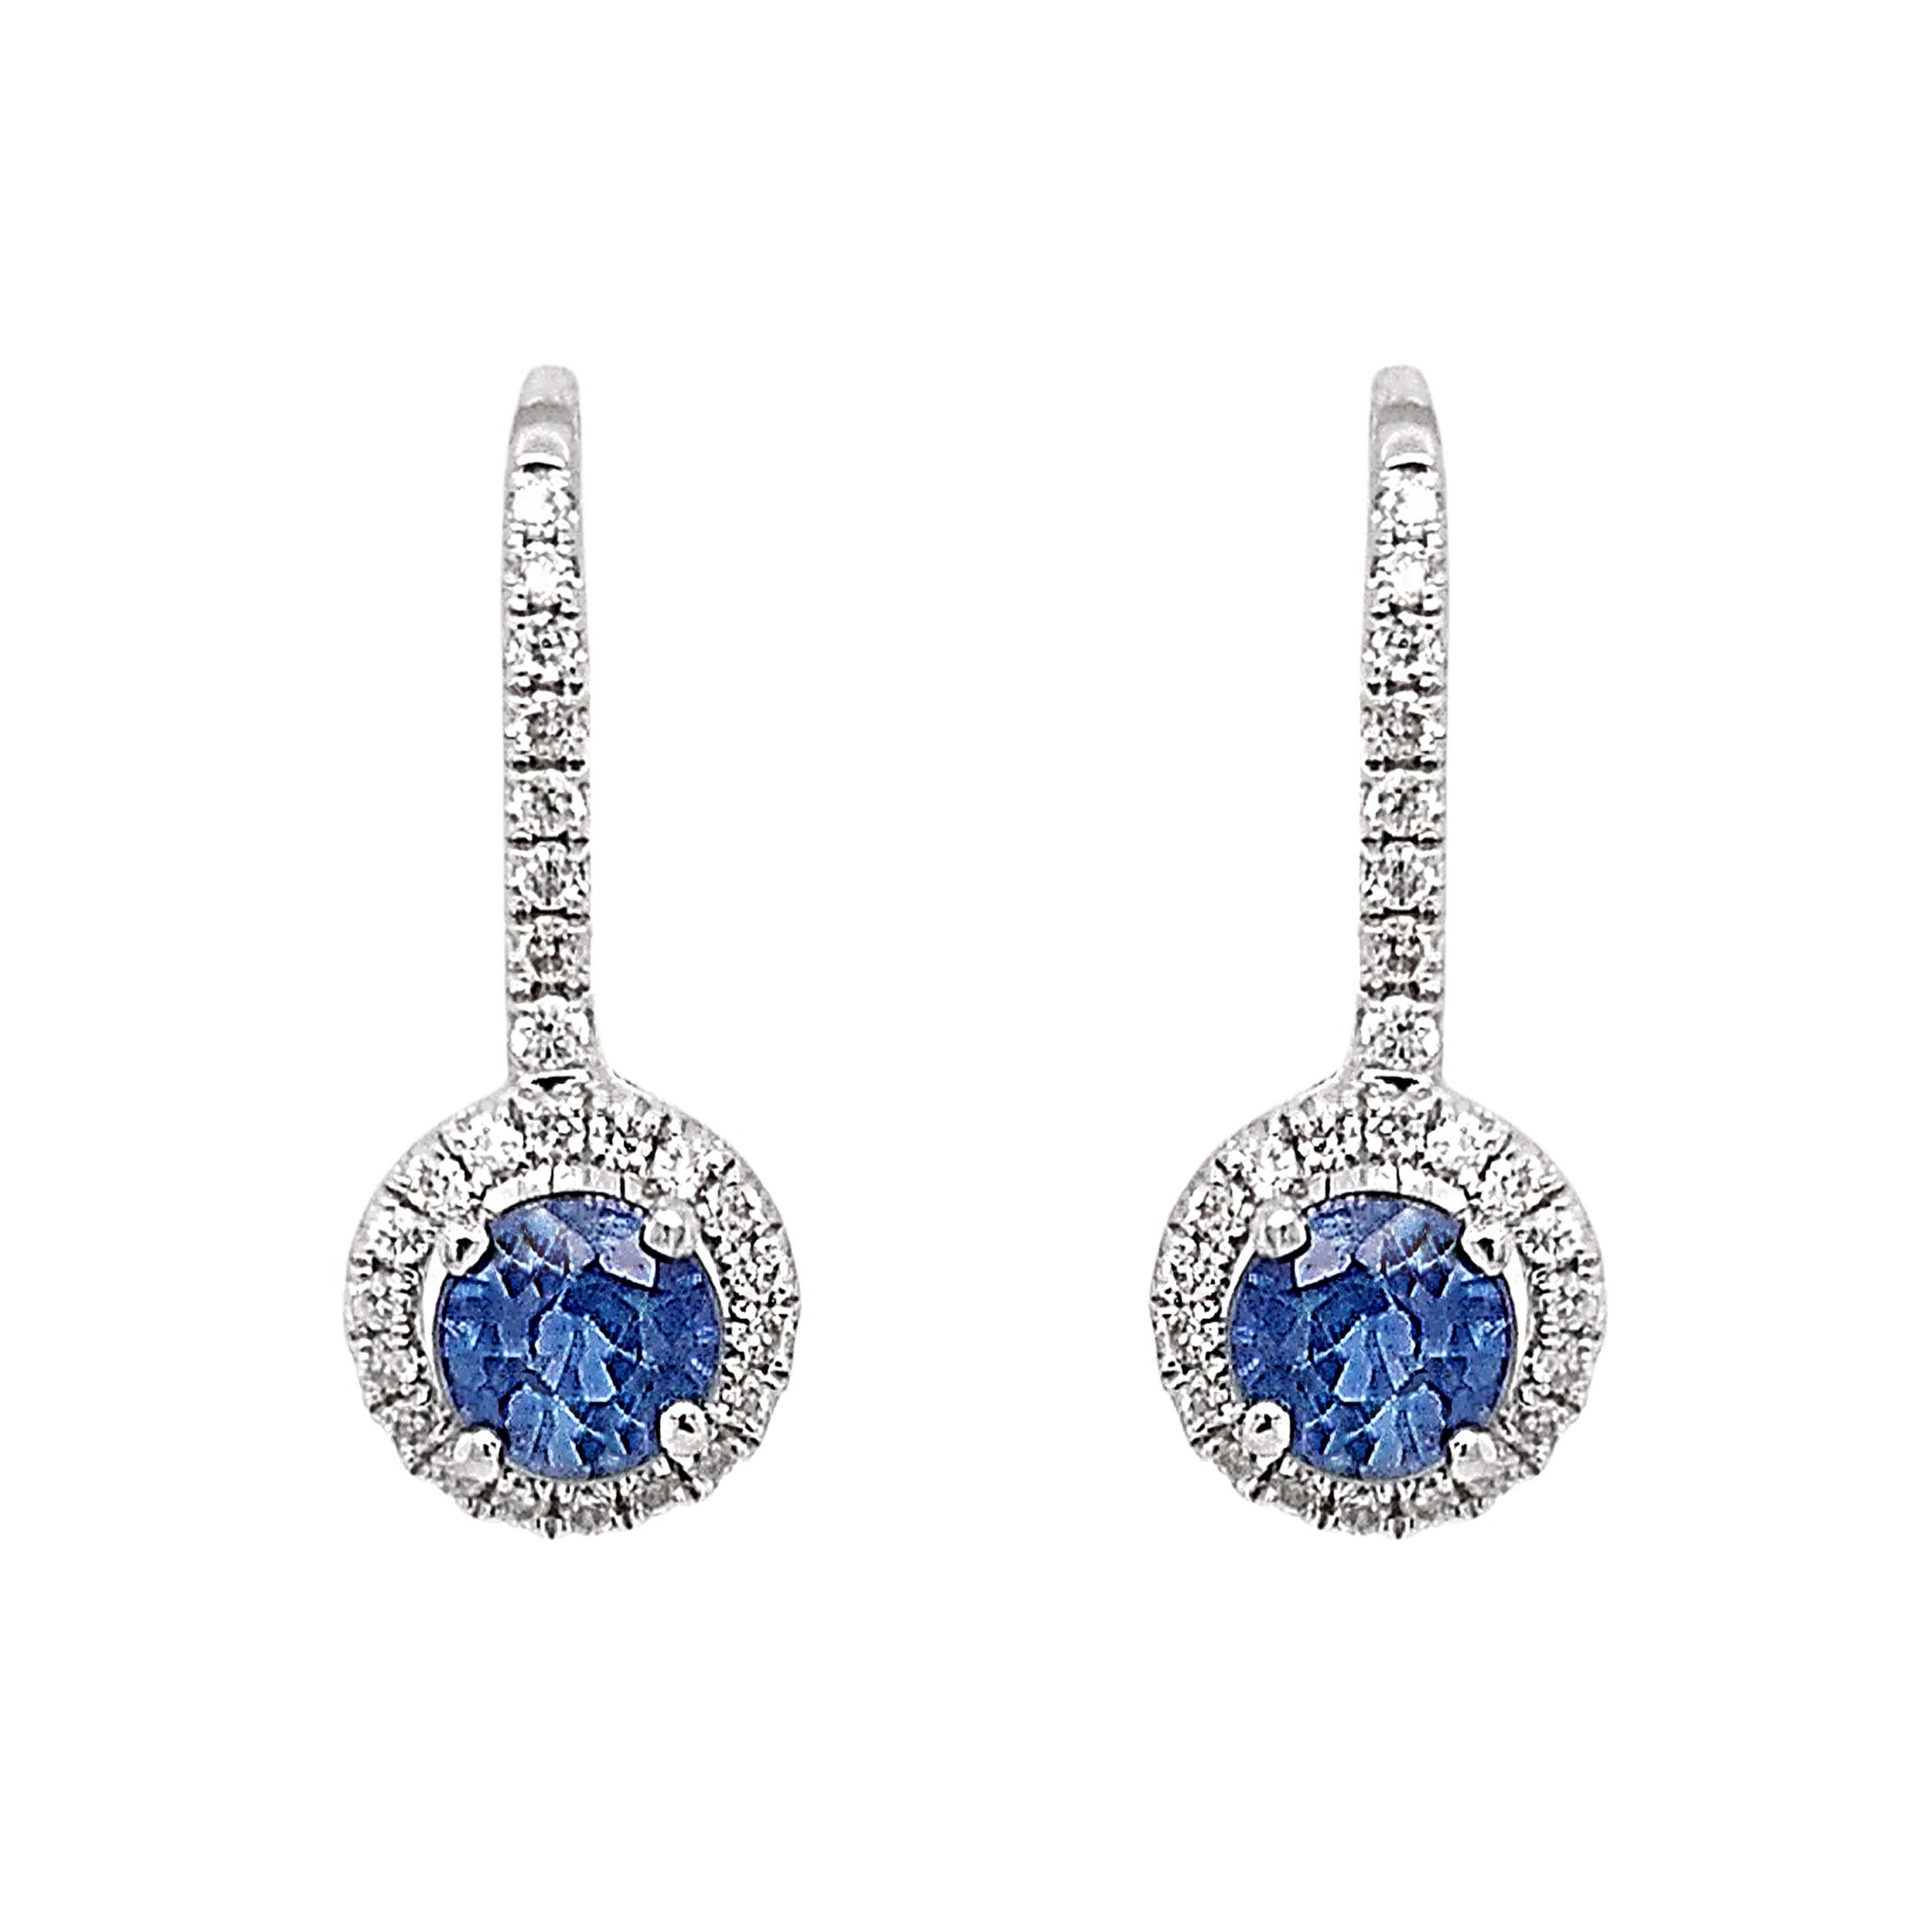 18ct White Gold Sapphire & Diamond Hinged Hoop Earrings